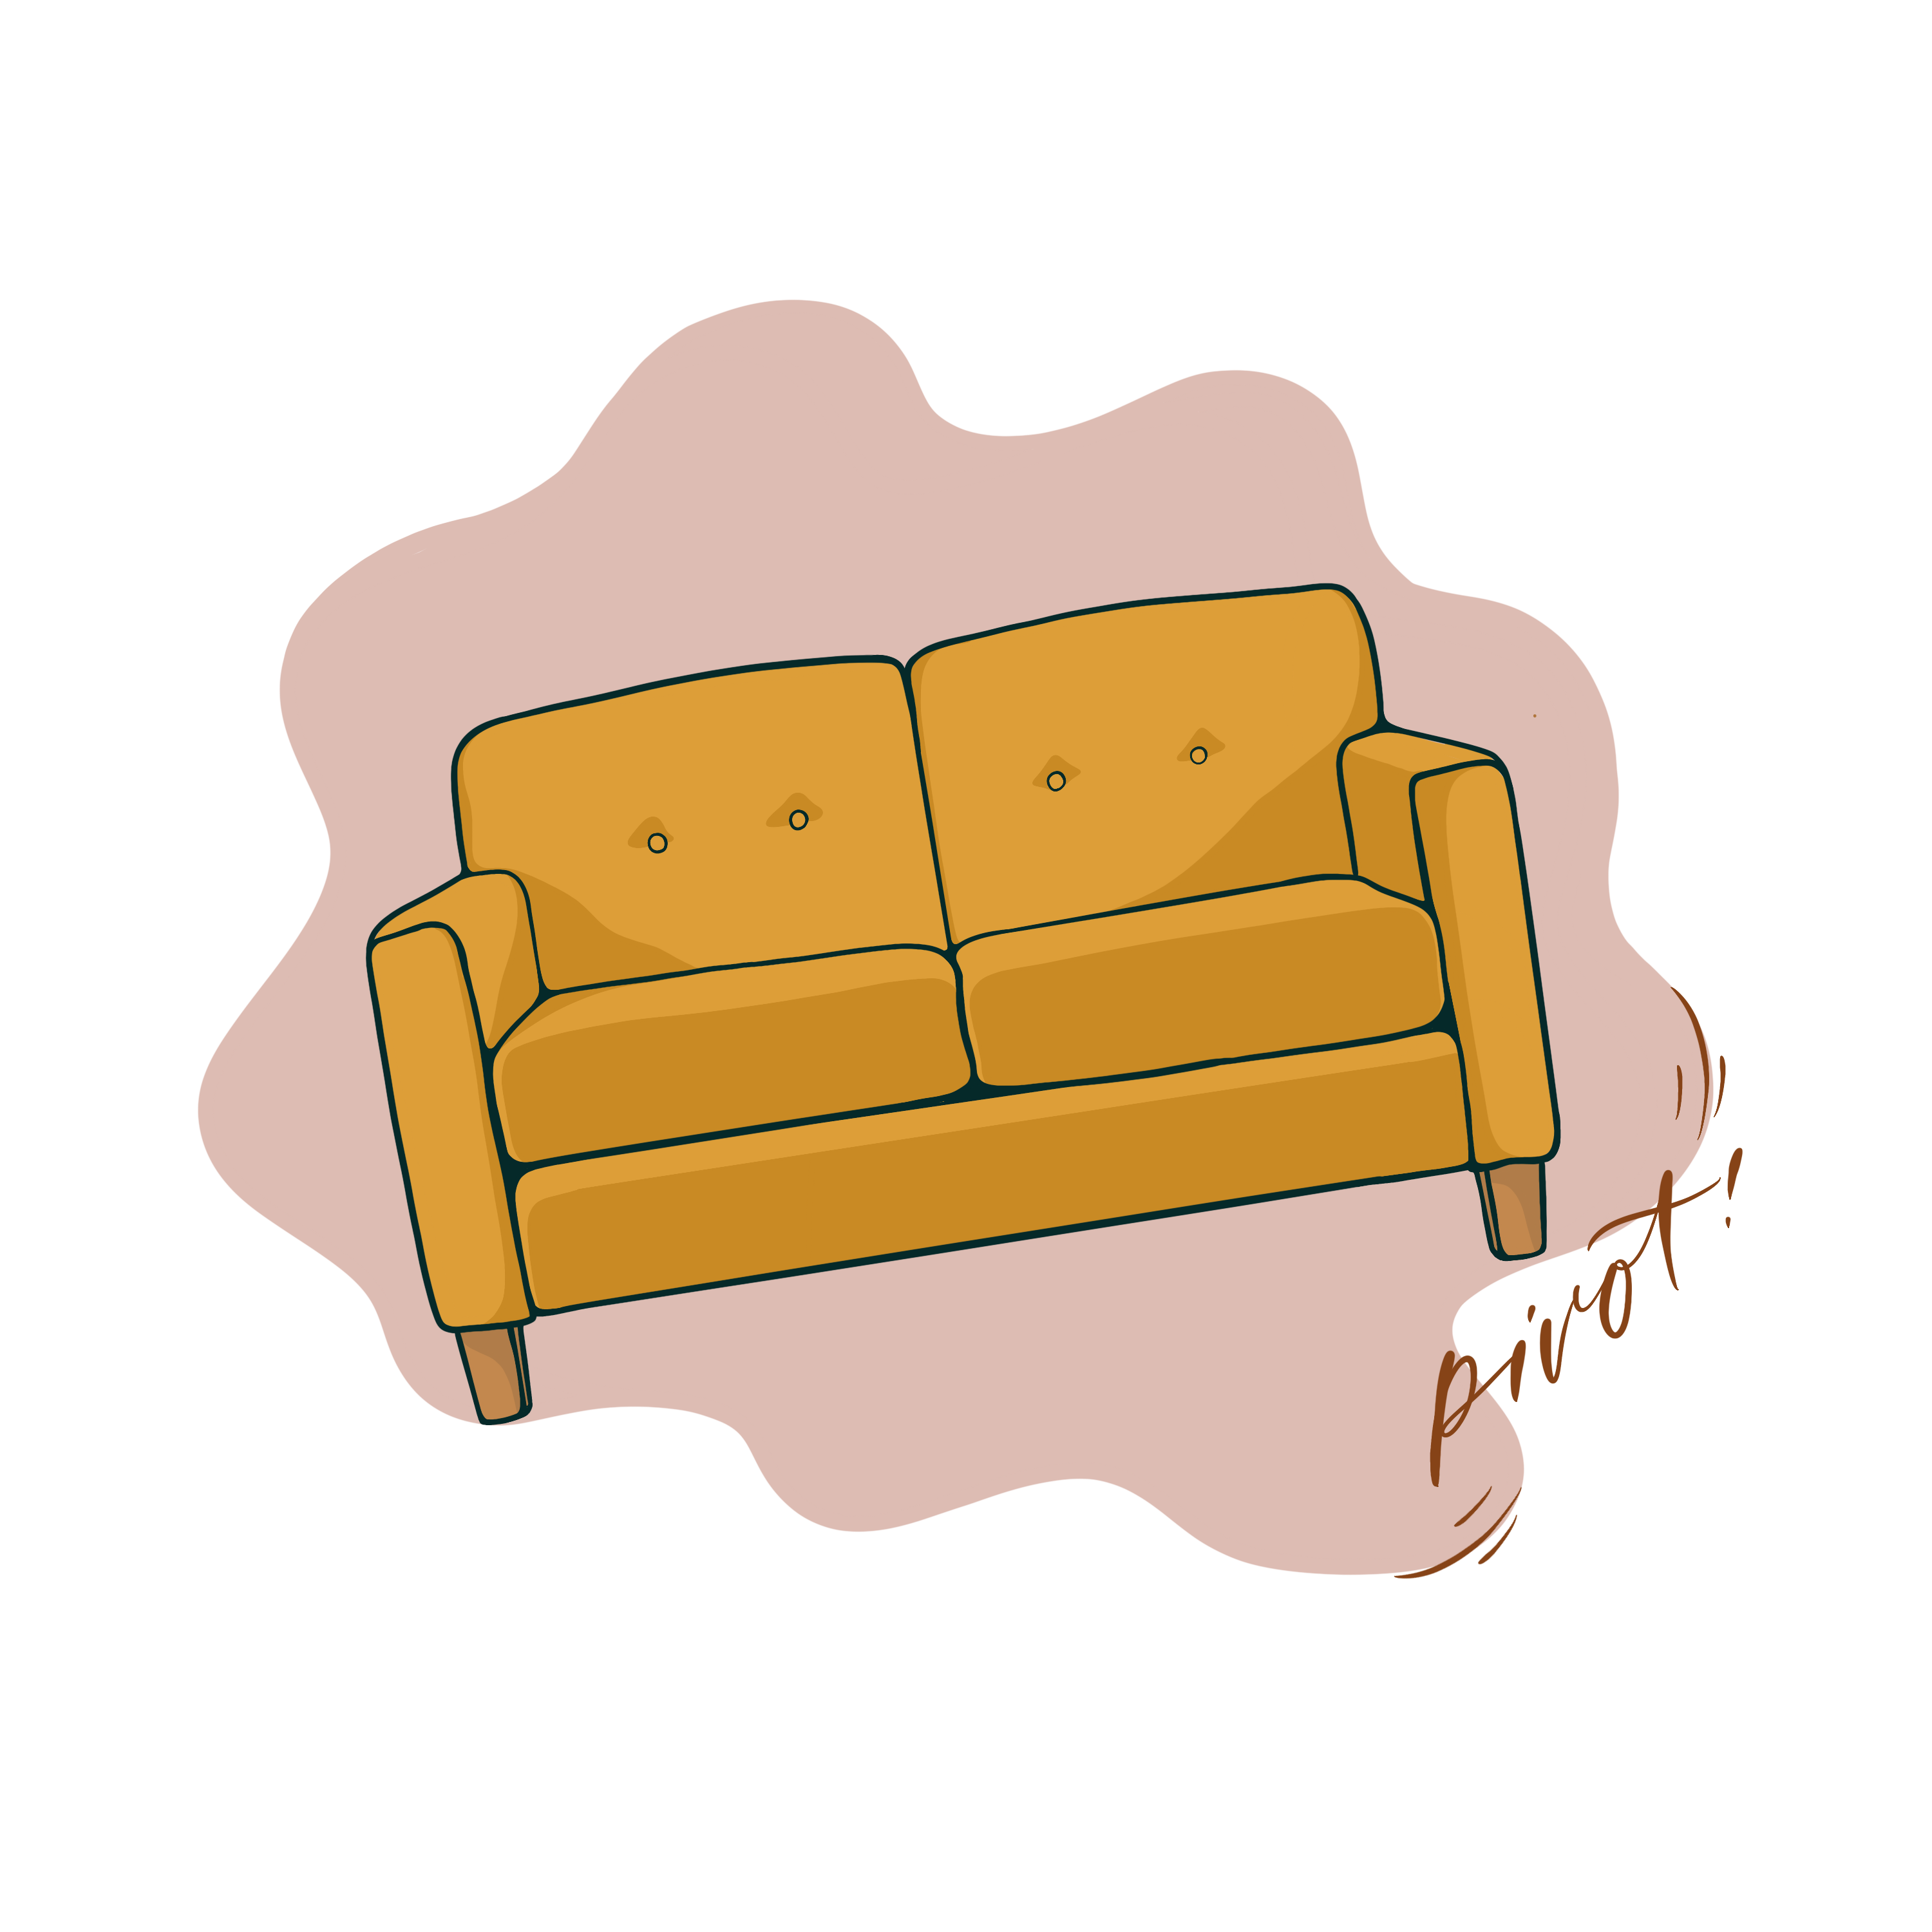 The same couch illustration from the top of the page